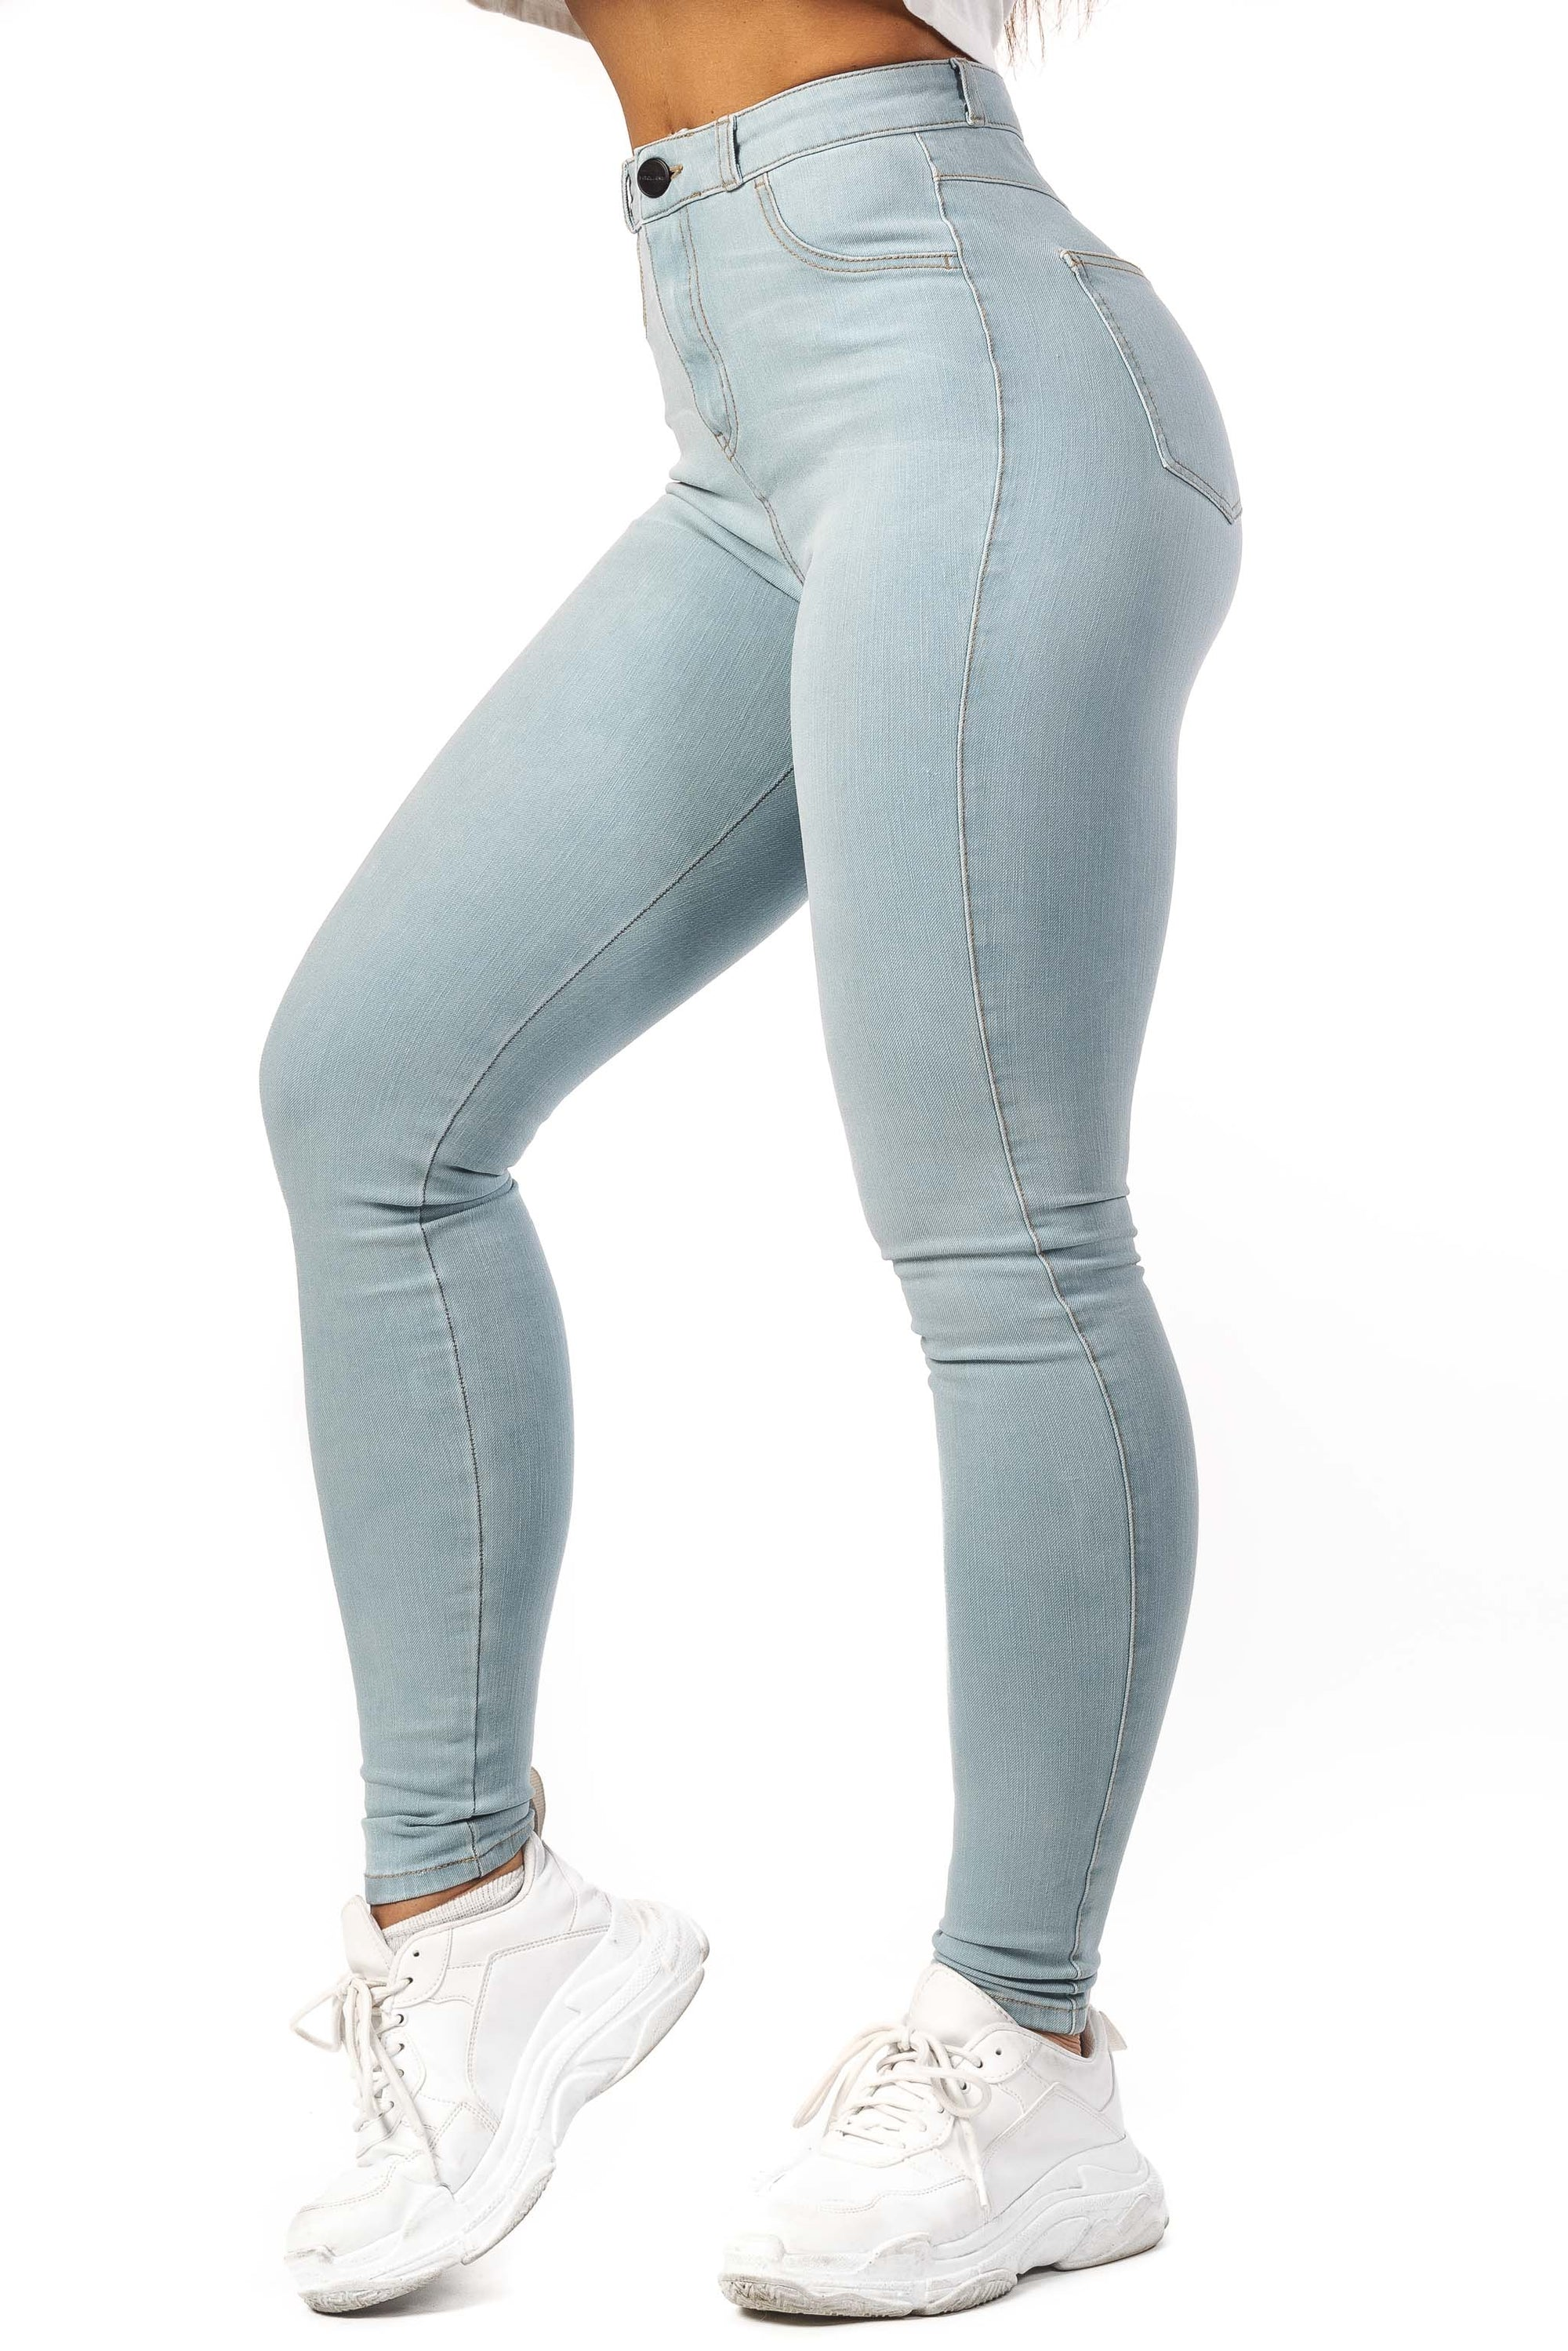 Herren Relaxed Fit Jeans aus Comfort Stretch | 94432213_0785 WE Fashion